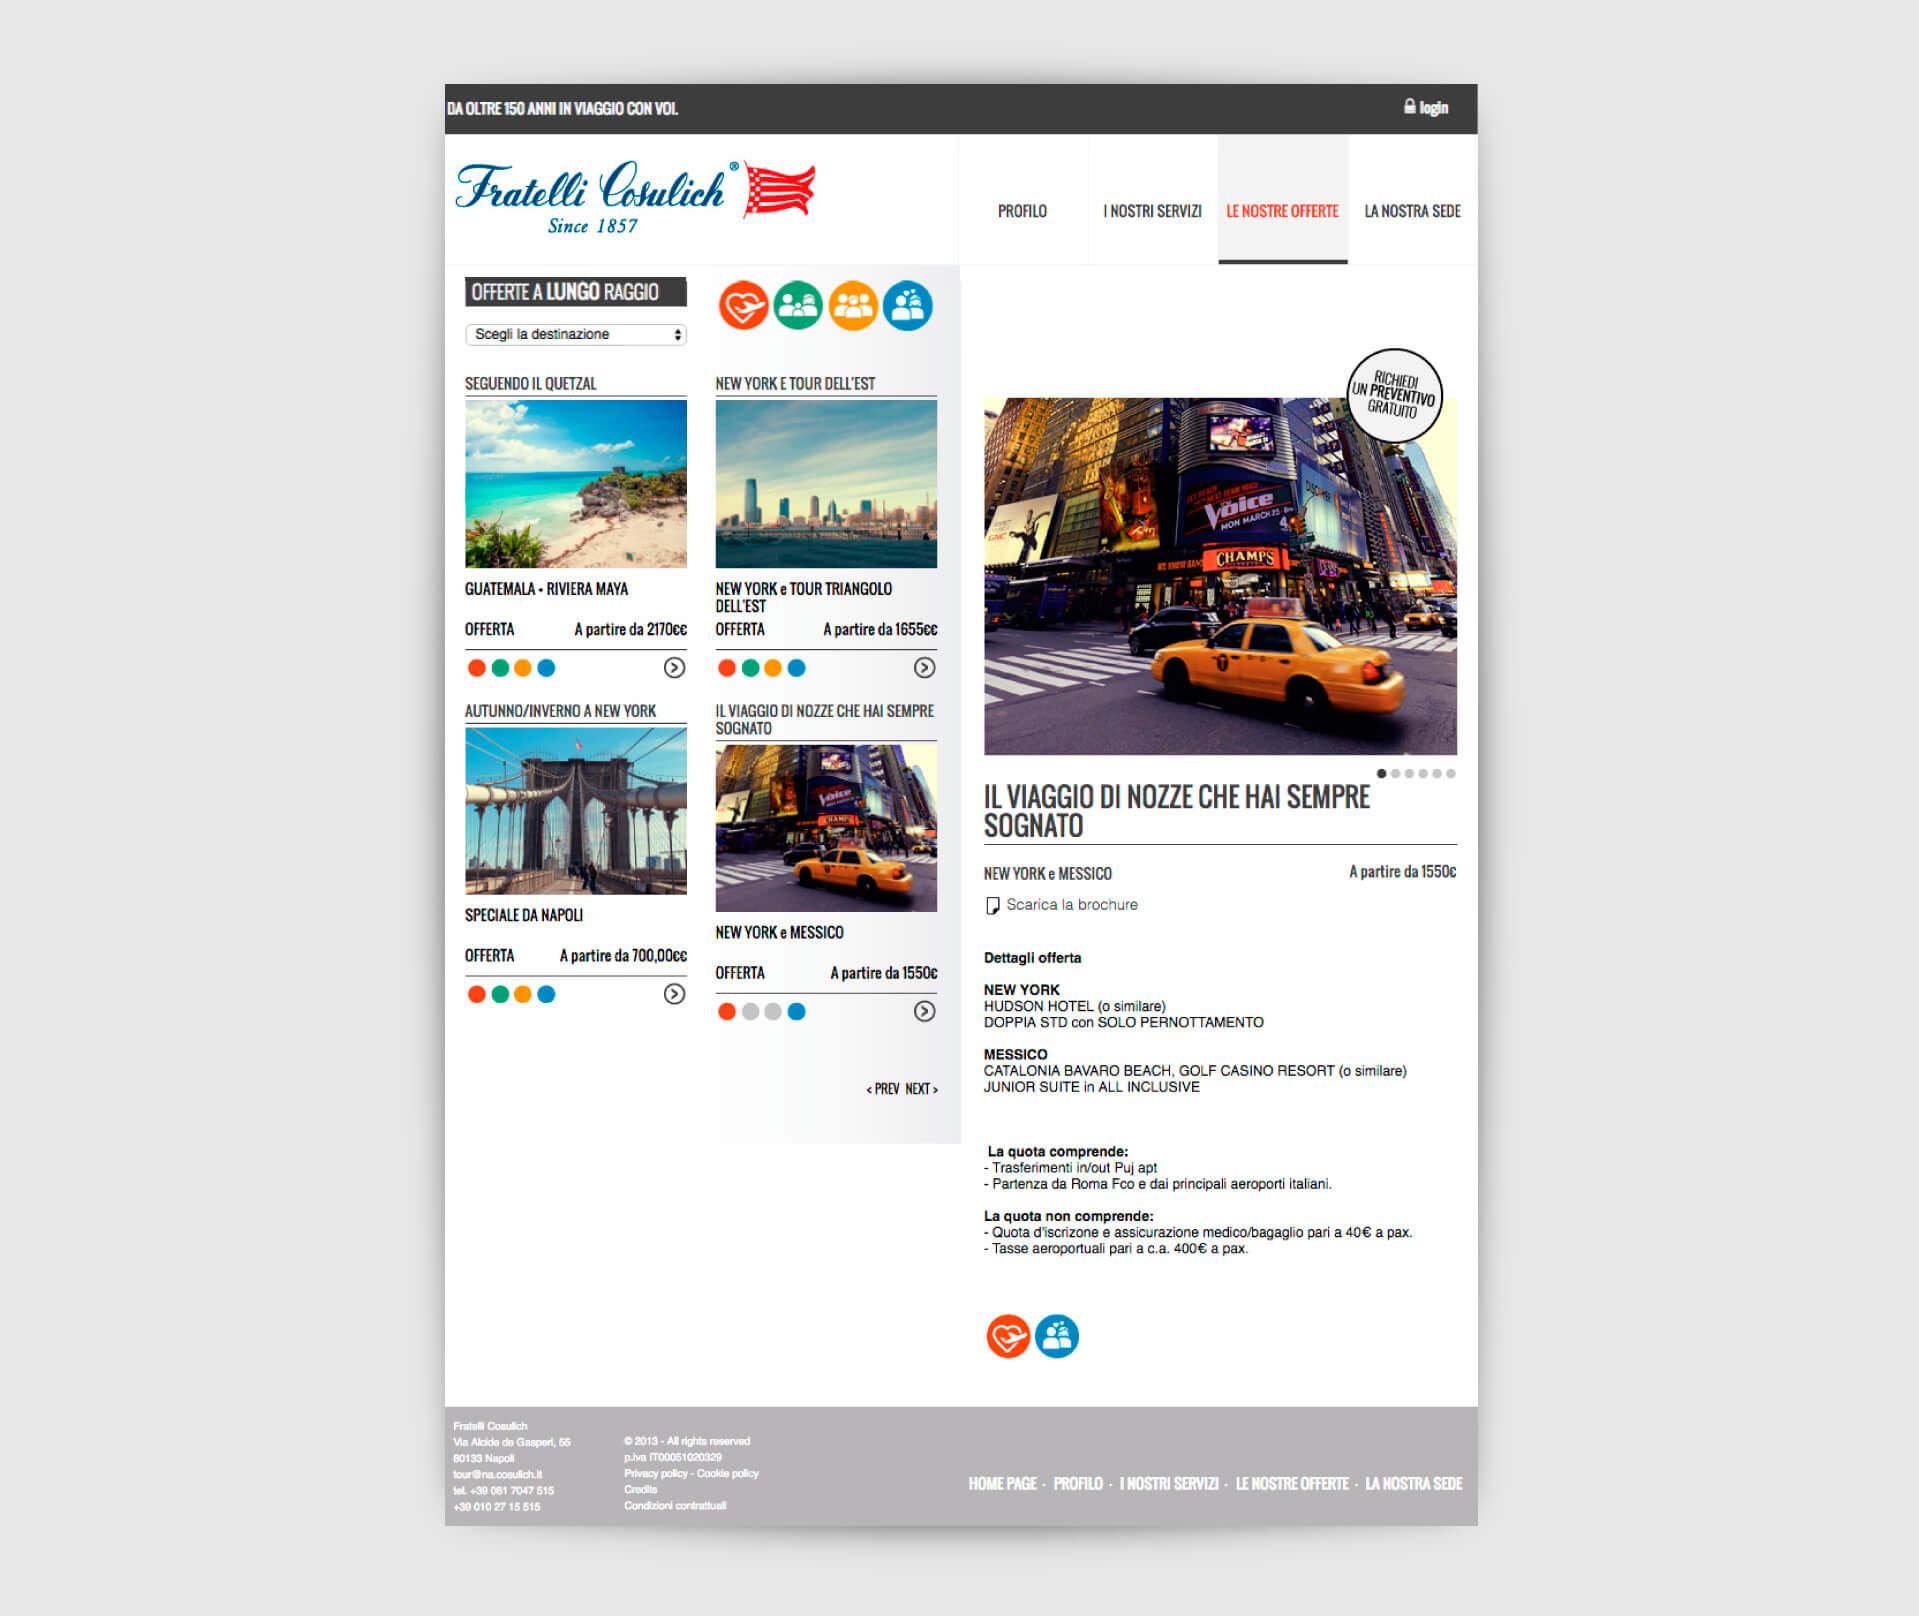 mintlab-webdesign-cosulich-travel-03